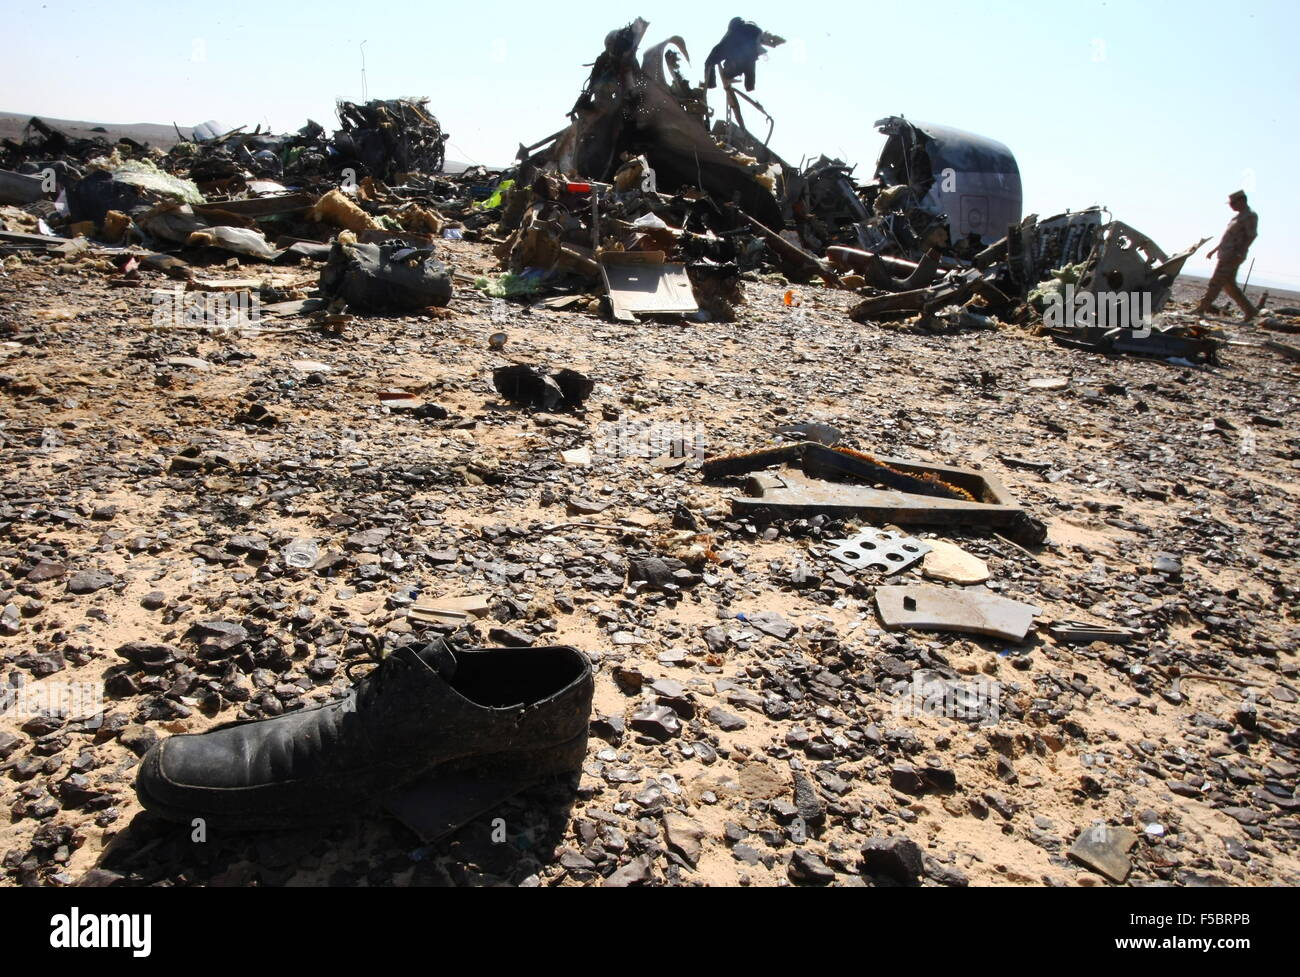 EGYPT  NOVEMBER 1, 2015  The site where a Russian aircraft